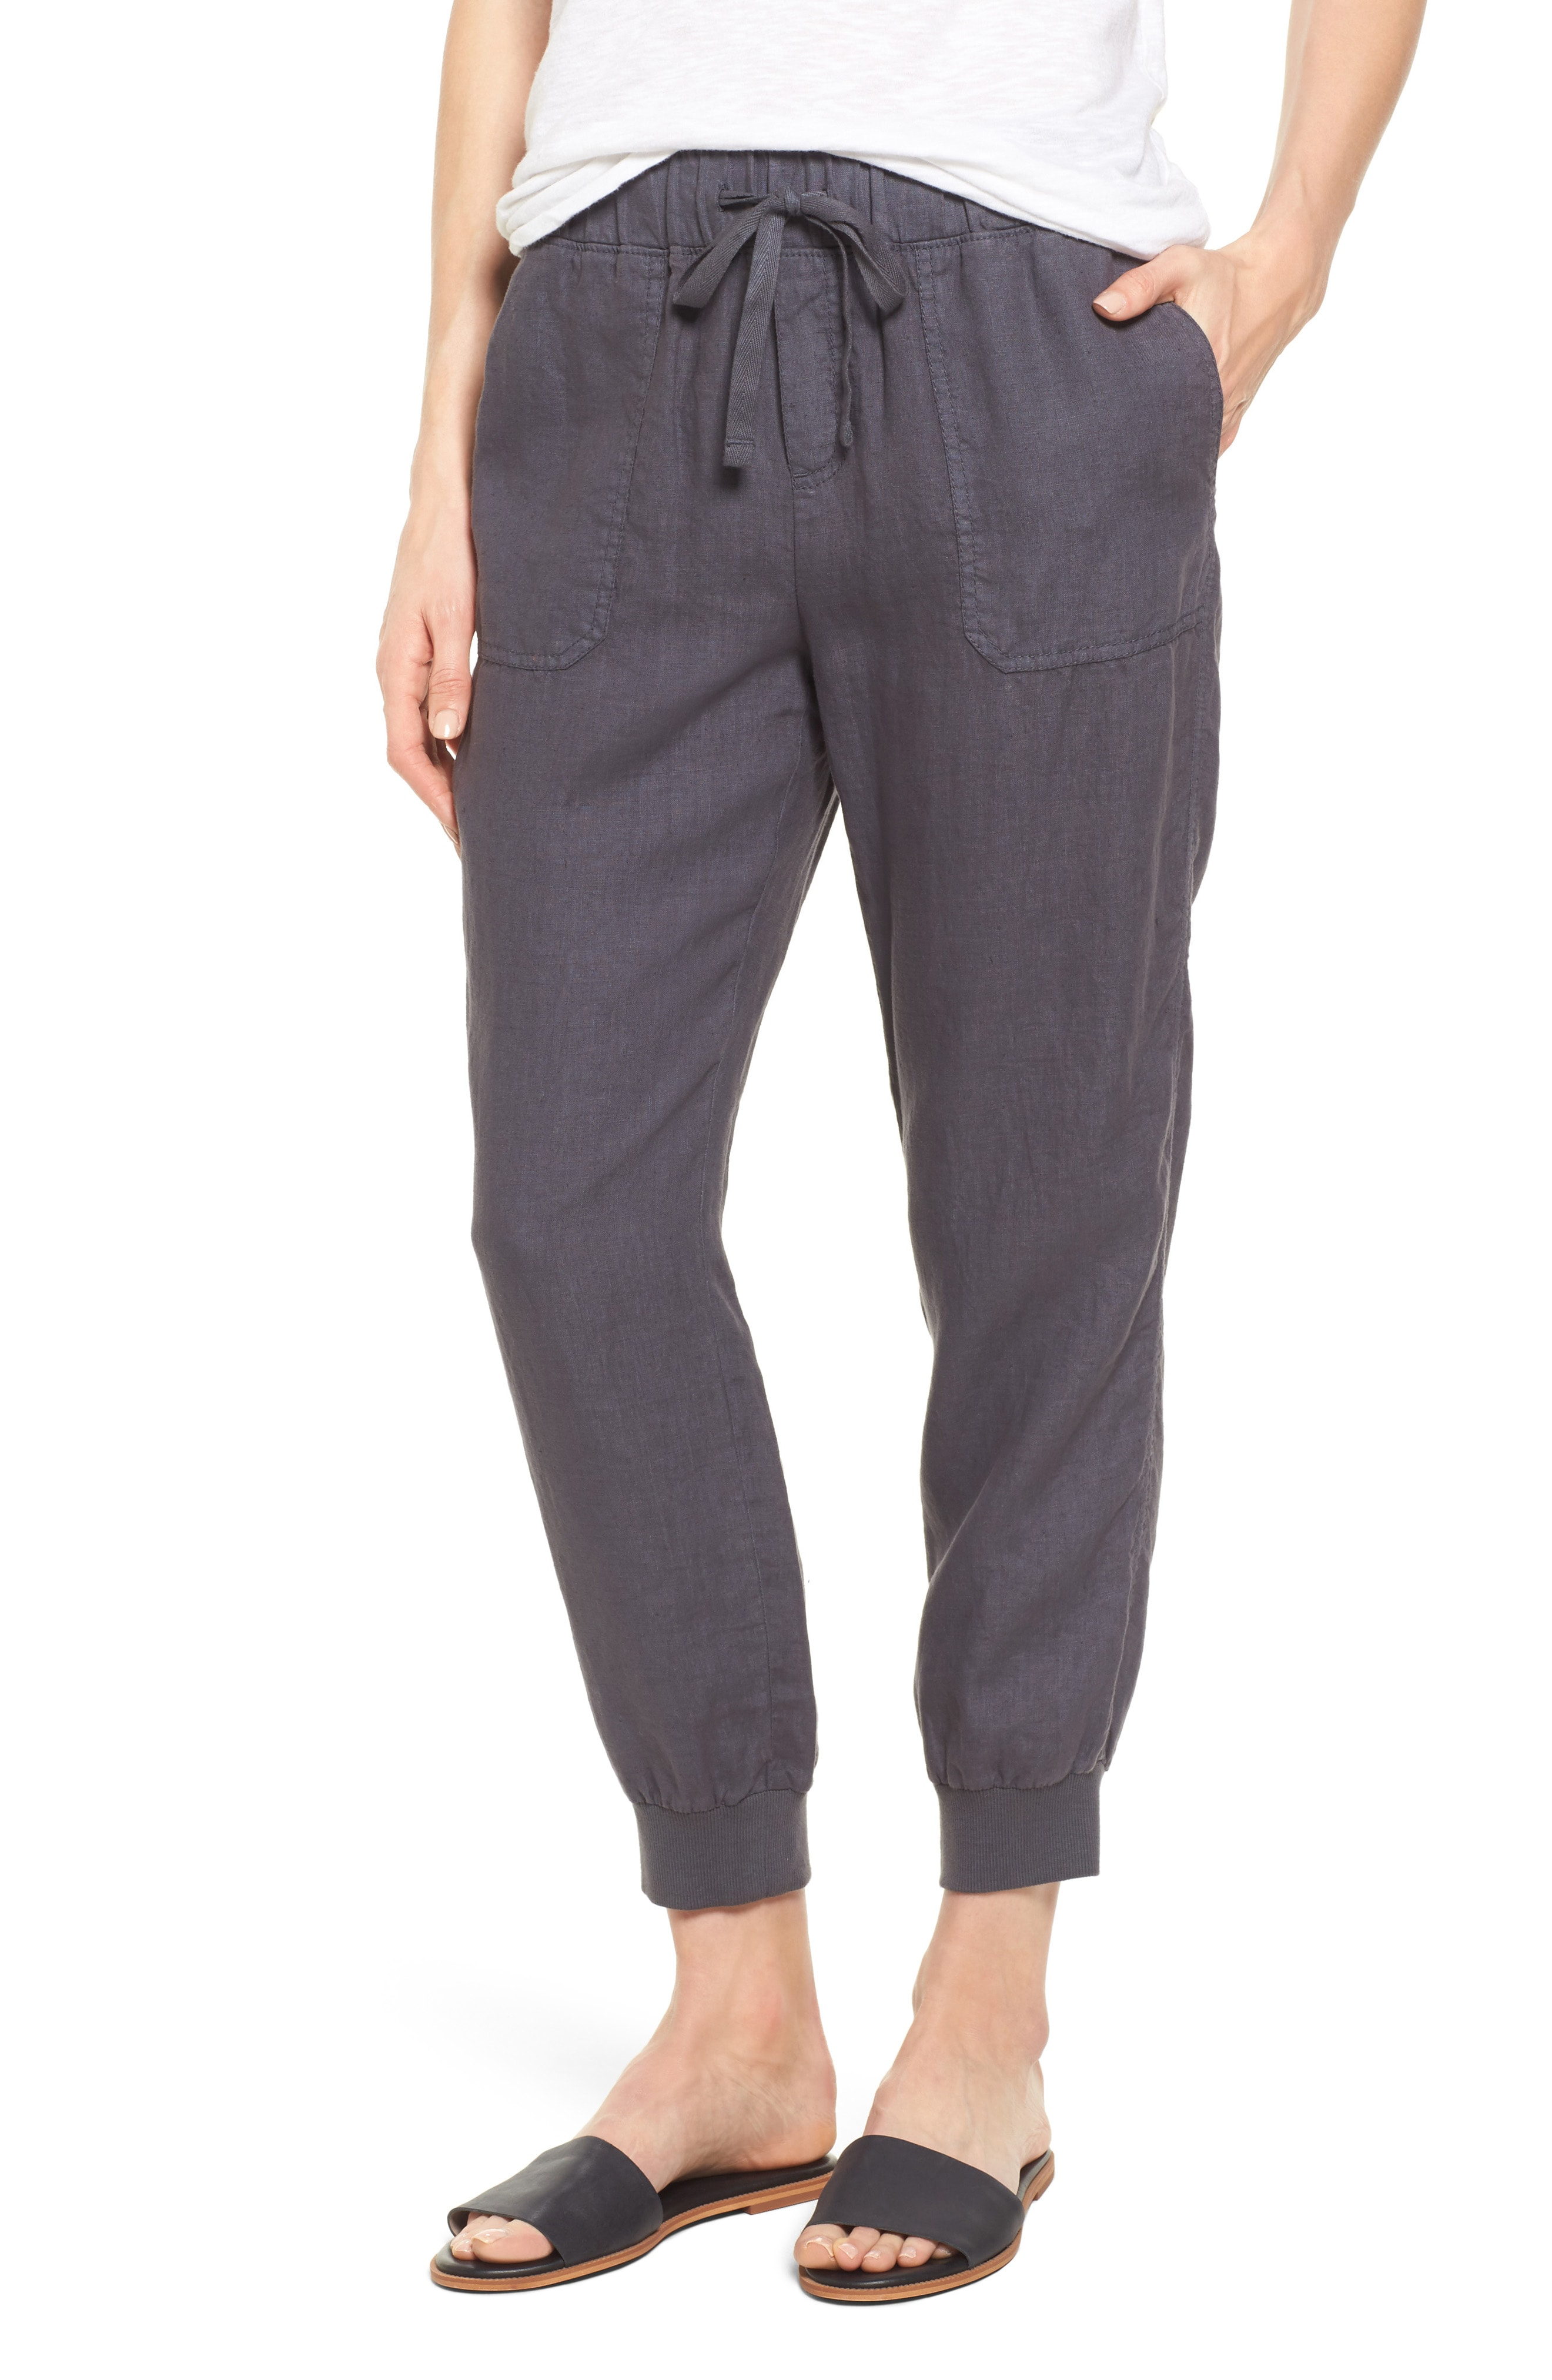 Women's Cropped & Capri Pants | Nordstrom